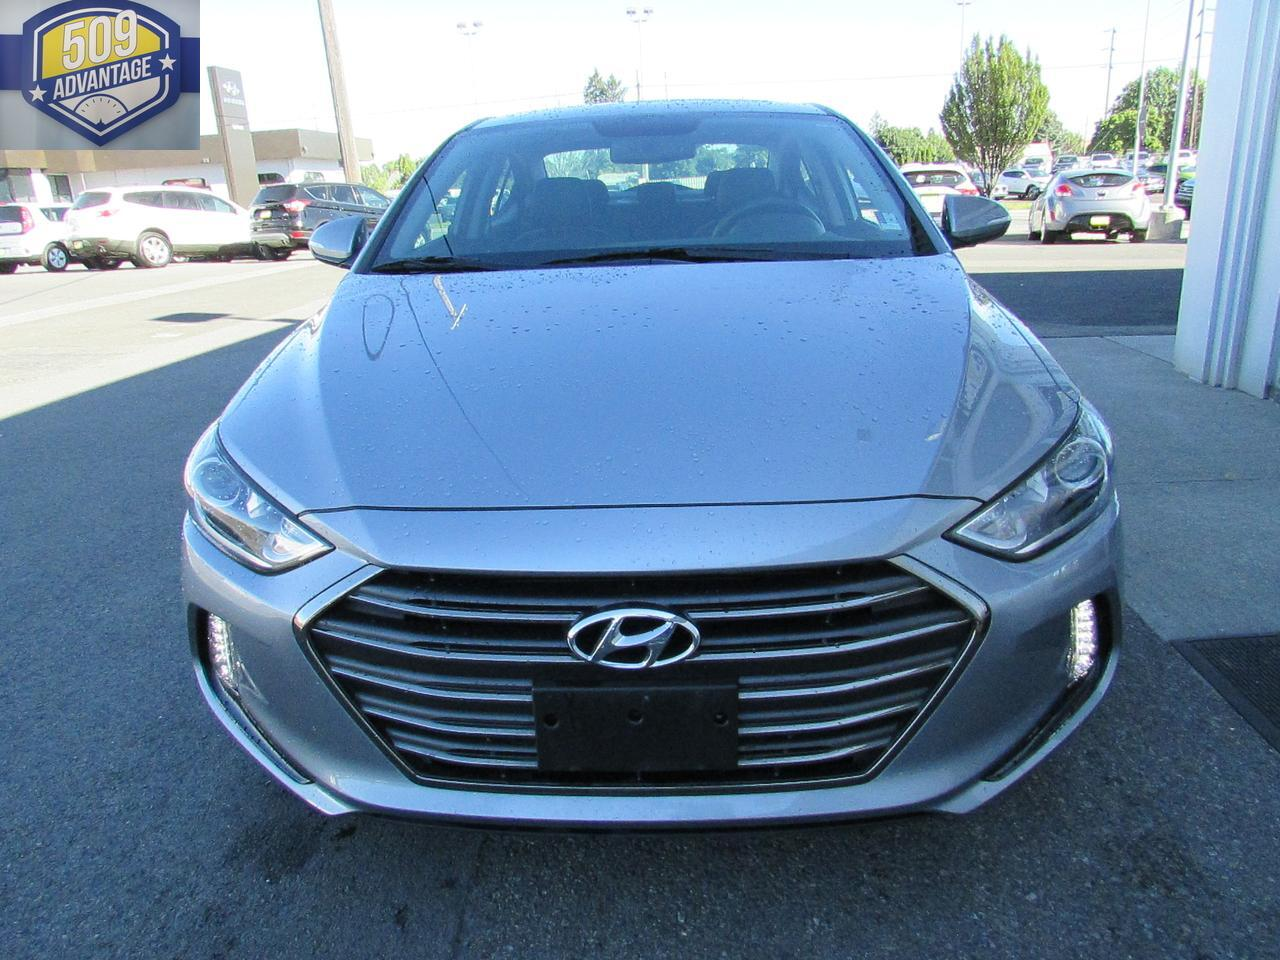 2017 HYUNDAI ELANTRA LIMITED TECH PAK Spokane Valley WA